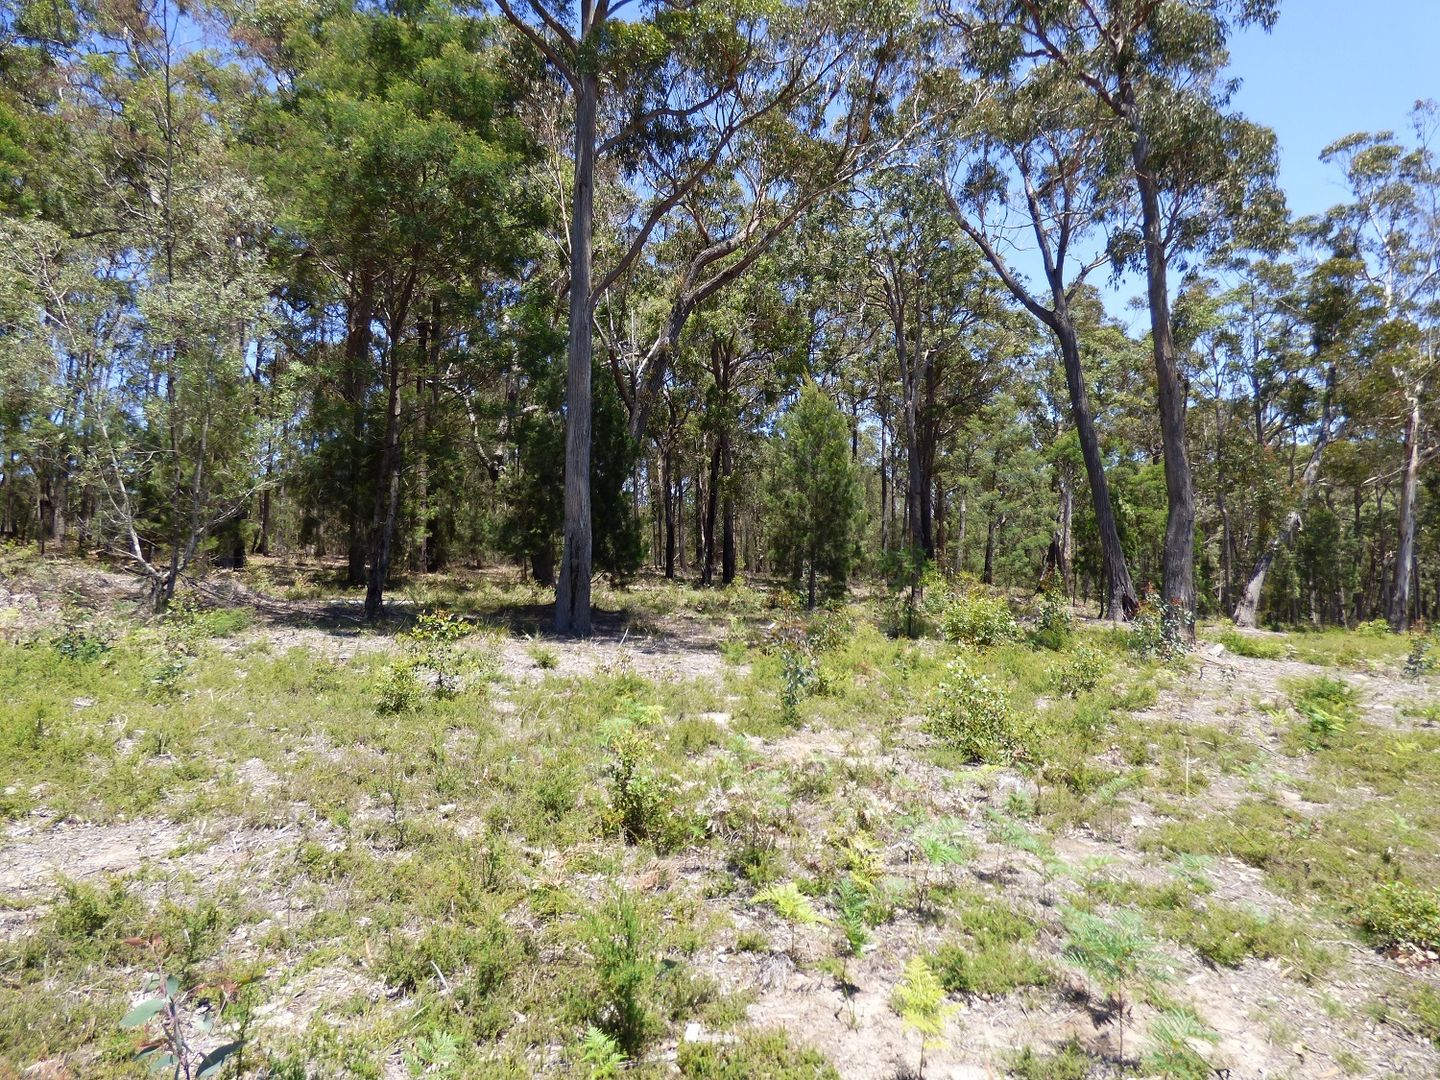 Lot D Gleeson Road Wonboyn Via, Eden NSW 2551, Image 1